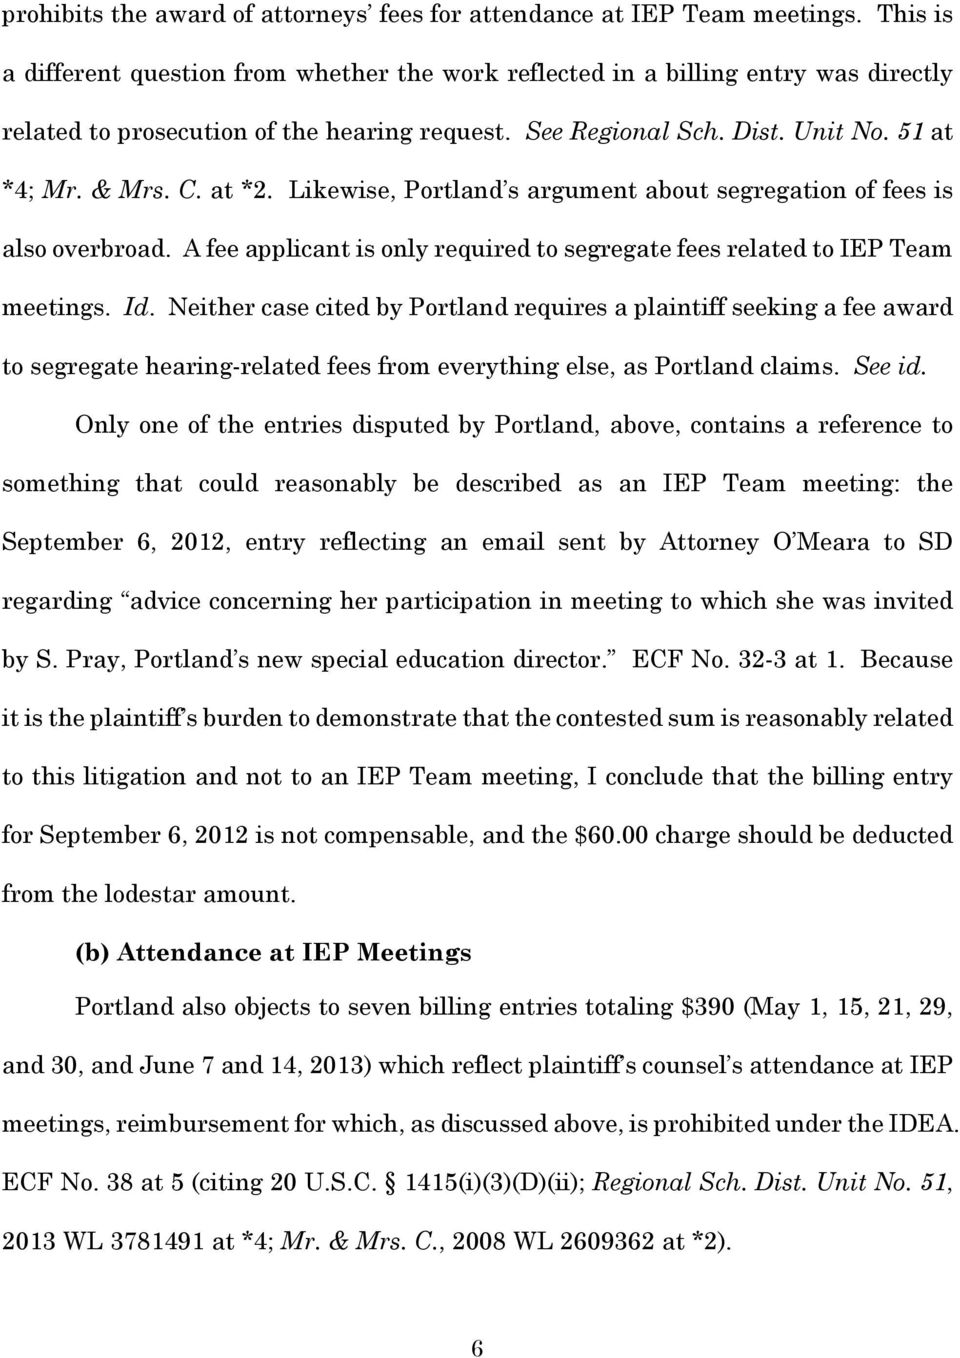 at *2. Likewise, Portland s argument about segregation of fees is also overbroad. A fee applicant is only required to segregate fees related to IEP Team meetings. Id.